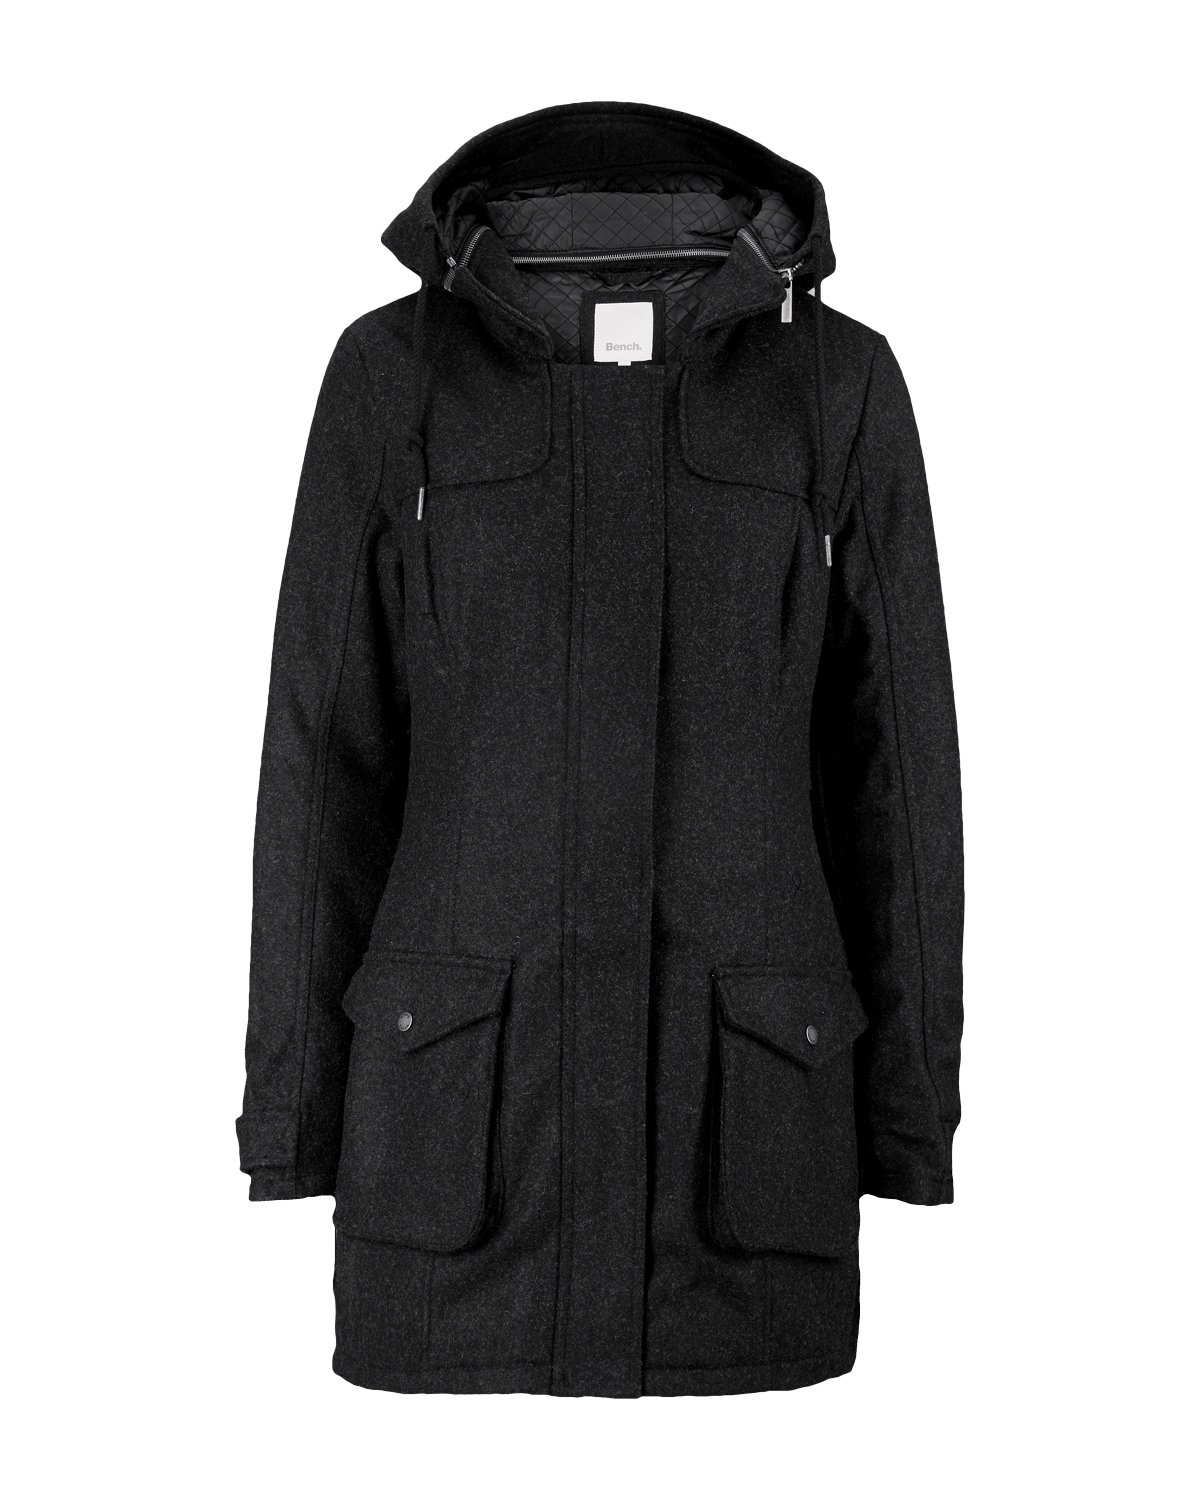 Bench Damen Jacke Wintry